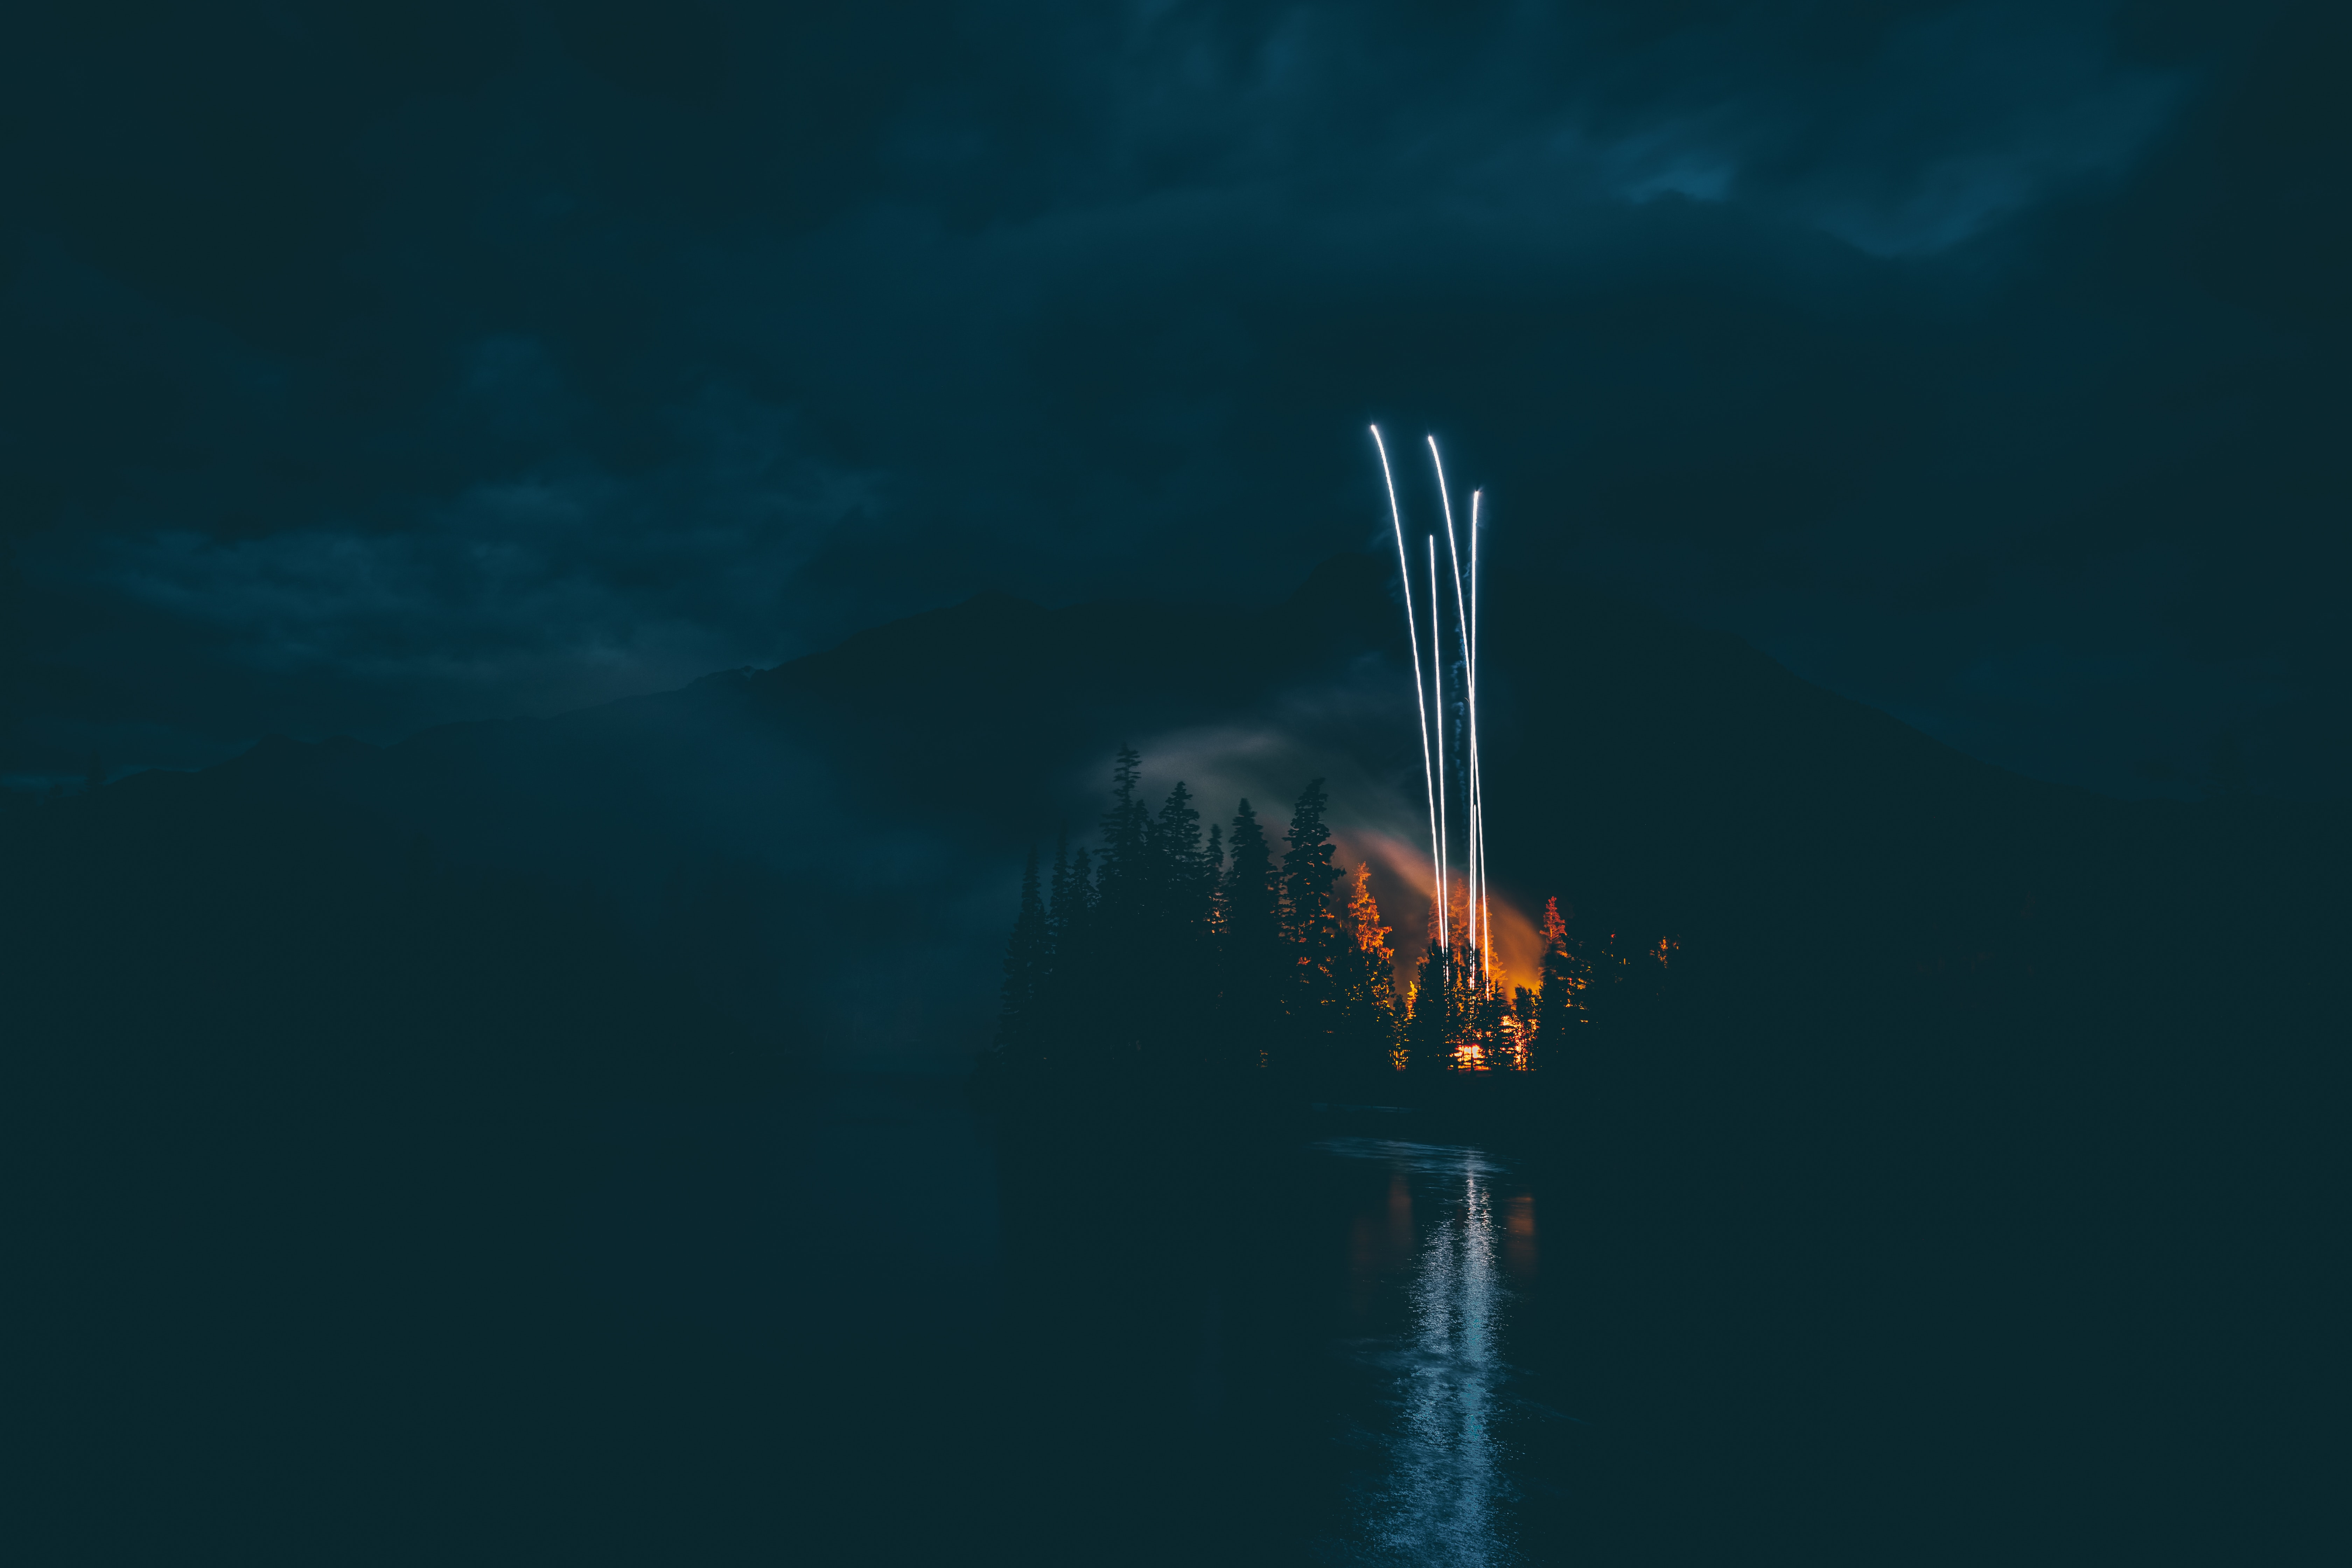 87324 download wallpaper Dark, Night, Lake, Shore, Bank, Fireworks, Firework screensavers and pictures for free